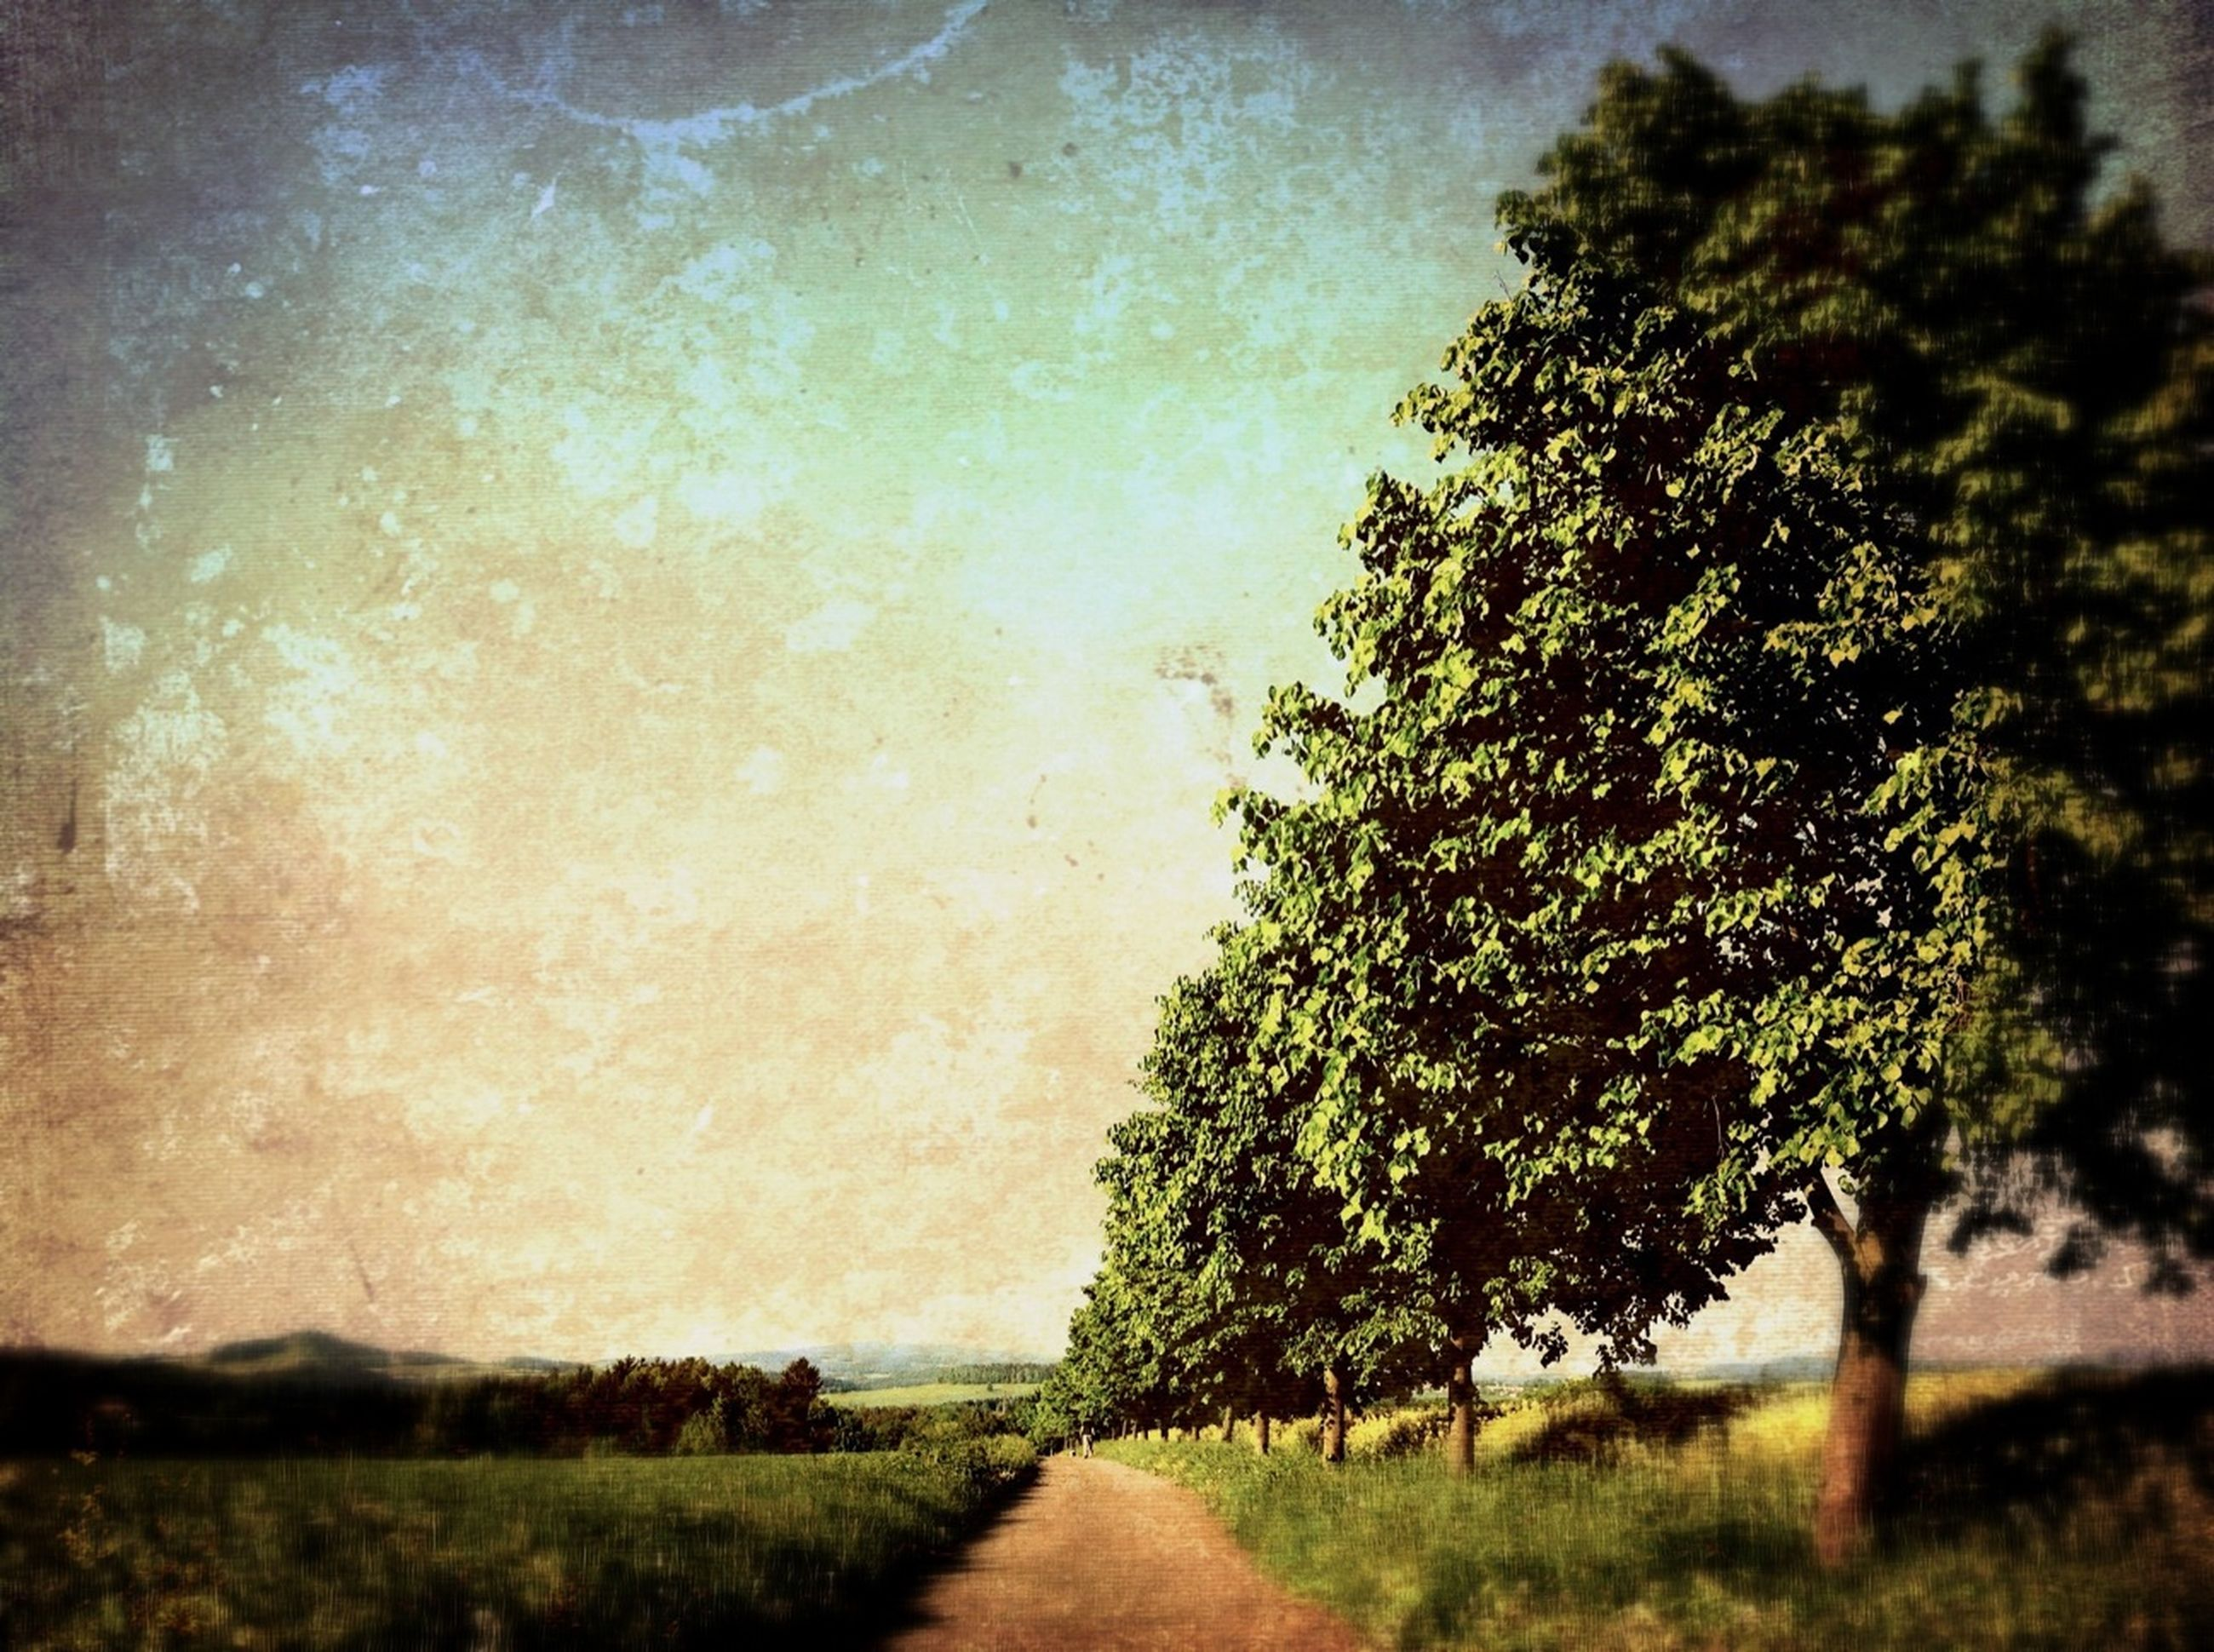 tree, the way forward, tranquility, tranquil scene, nature, road, growth, sky, beauty in nature, scenics, landscape, dirt road, field, grass, diminishing perspective, transportation, plant, street, outdoors, no people